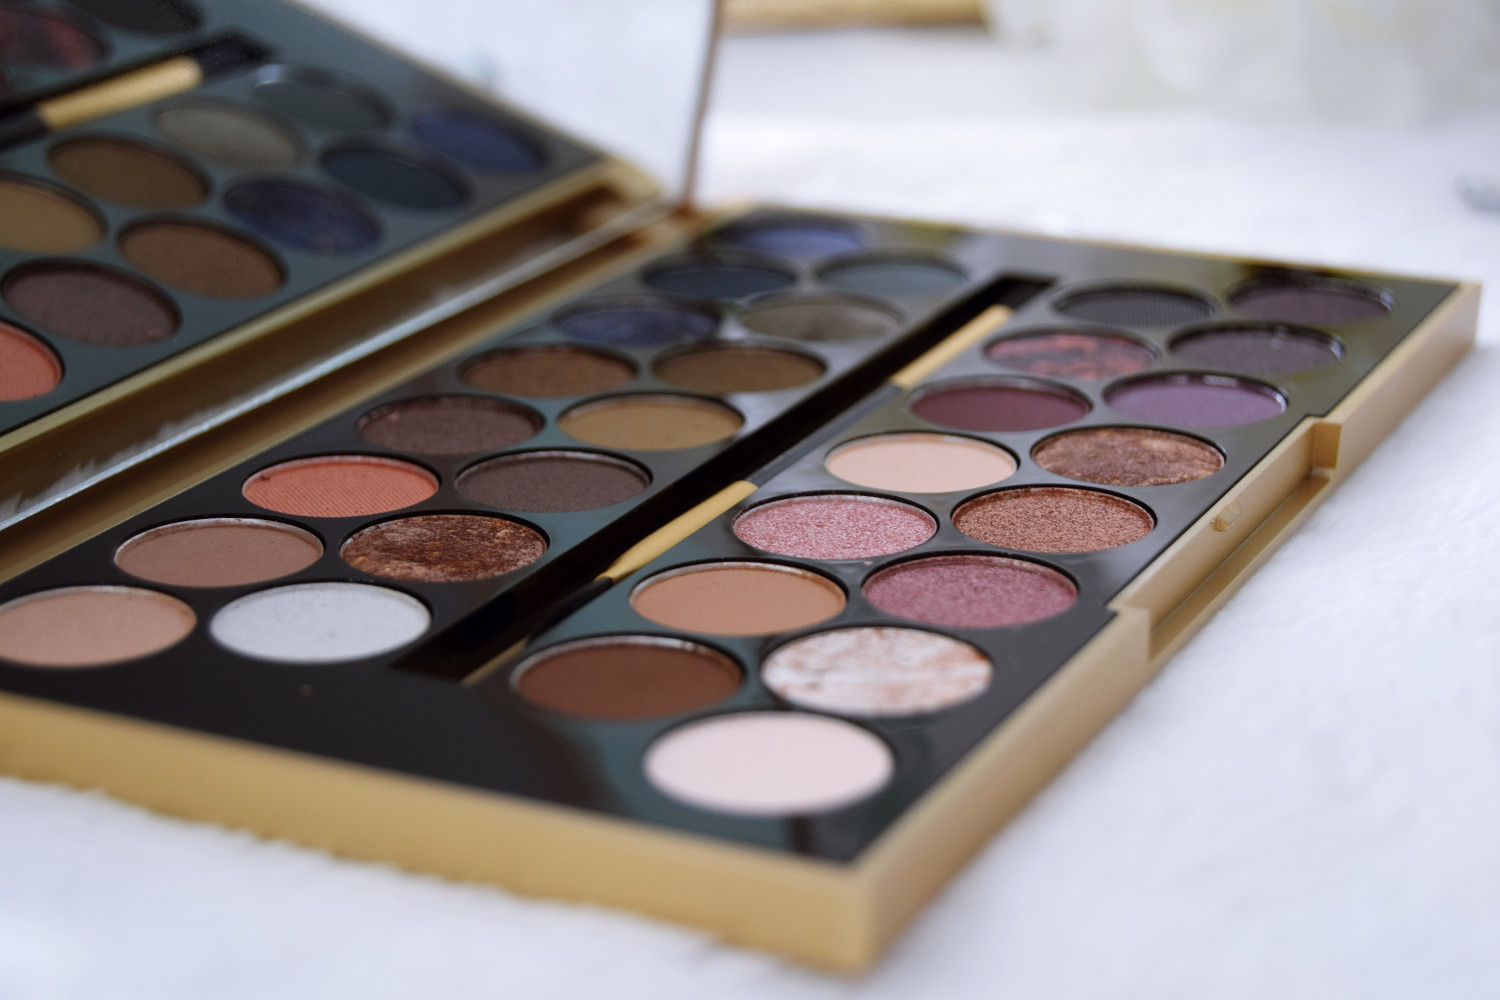 Makeup_Revolution_London_haul_review_Fortune_favours_the_brave_eyeshadows_Zalabell_2